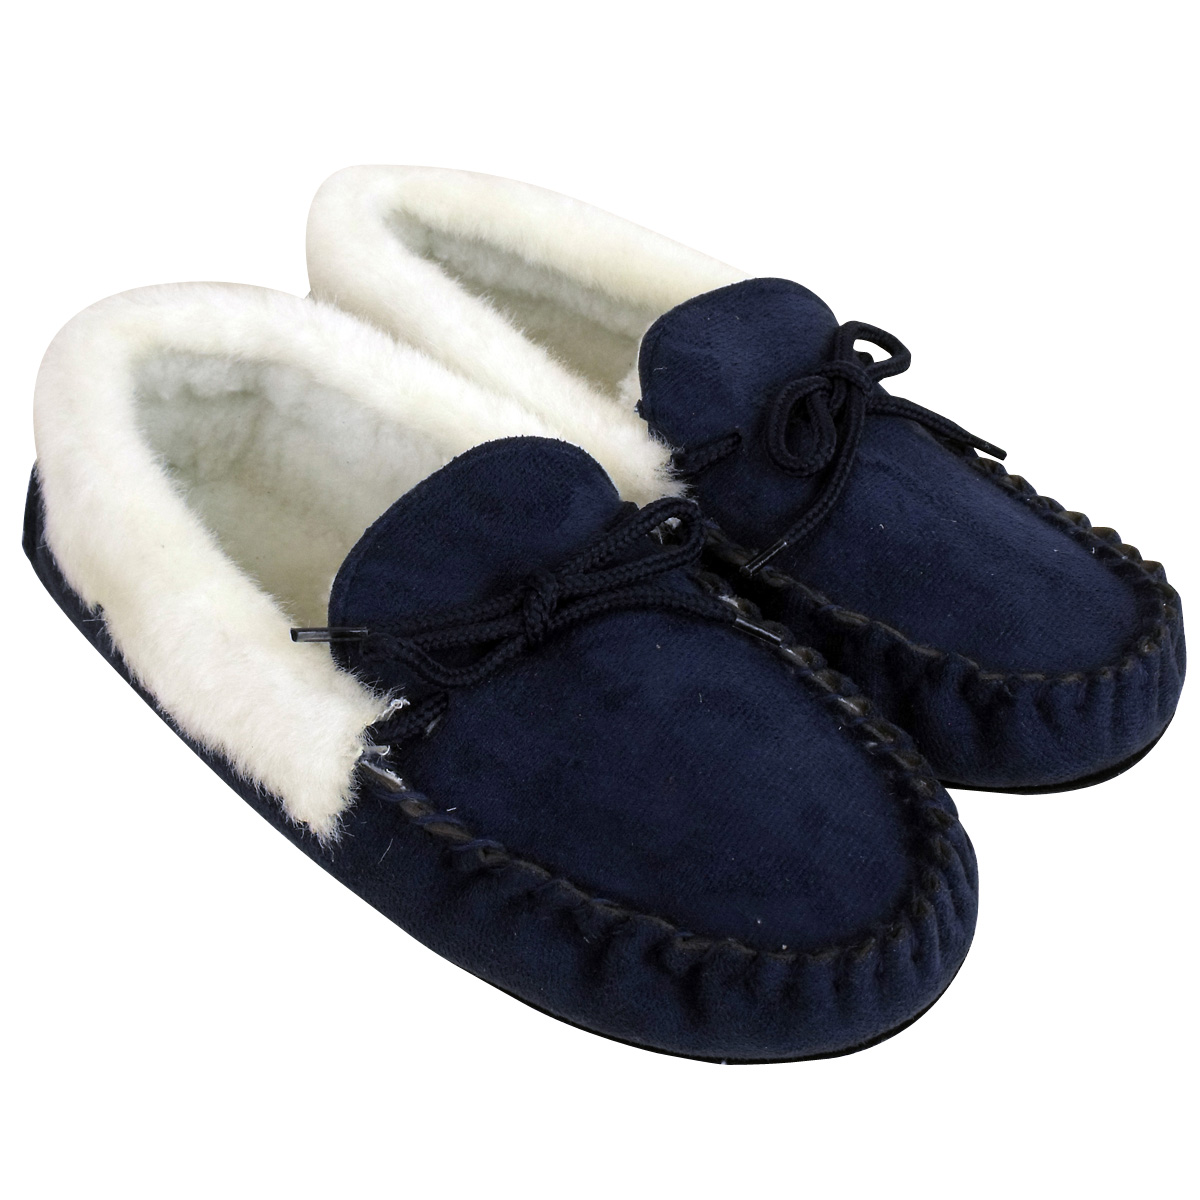 Shop for womens fur slippers online at Target. Free shipping on purchases over $35 and save 5% every day with your Target REDcard.